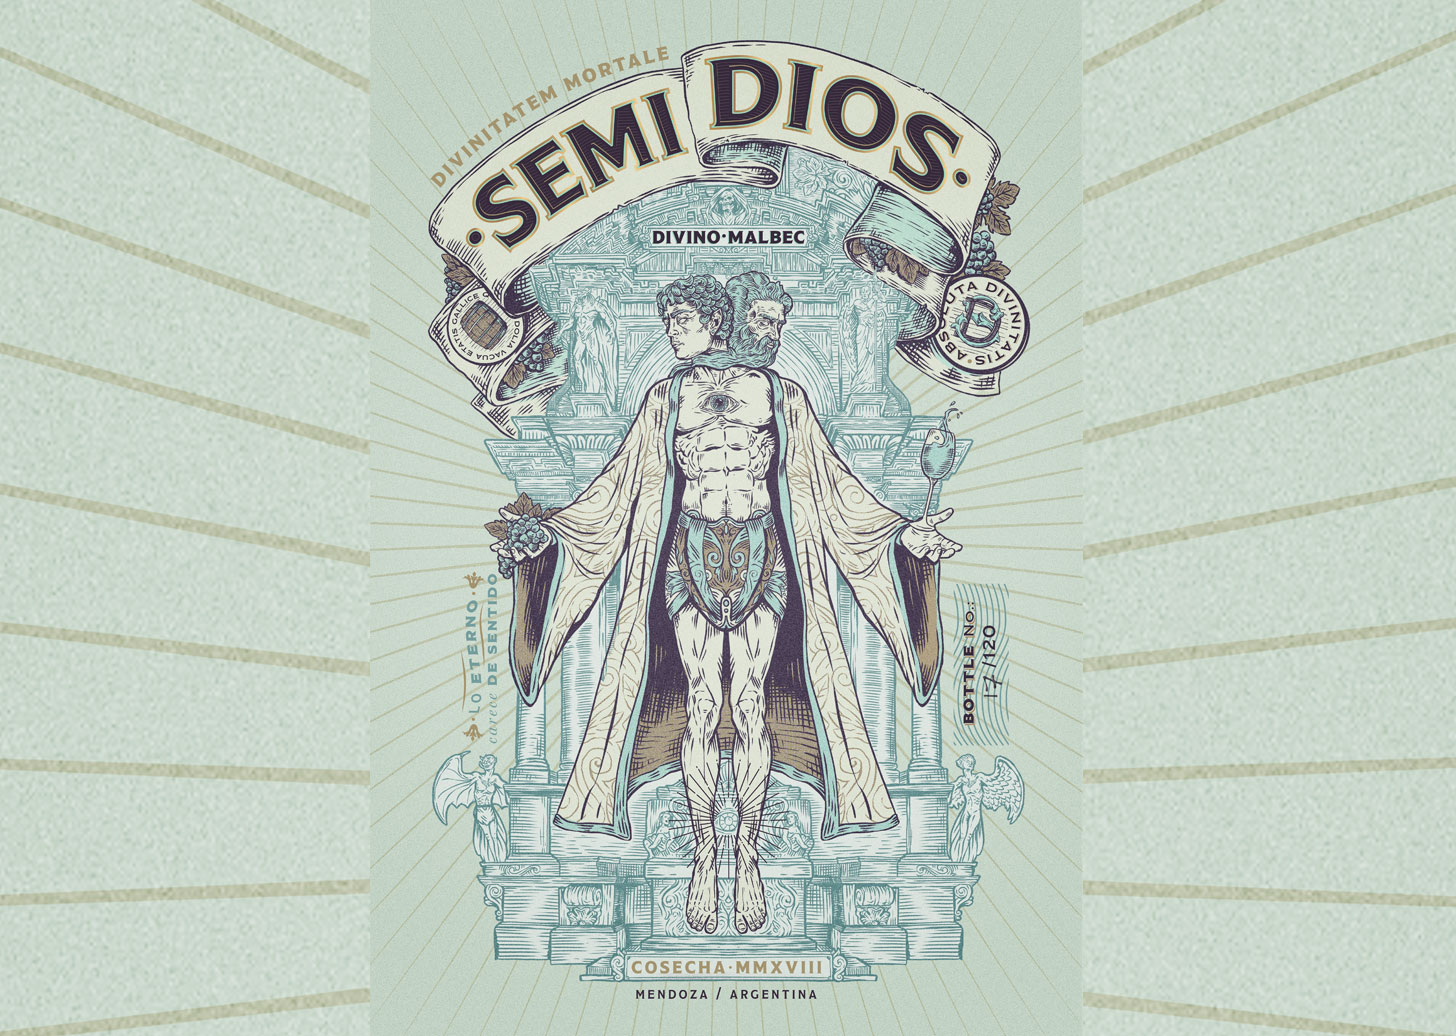 Concept SemiDios Malbec Wine Label Design Created by Emi Renzi